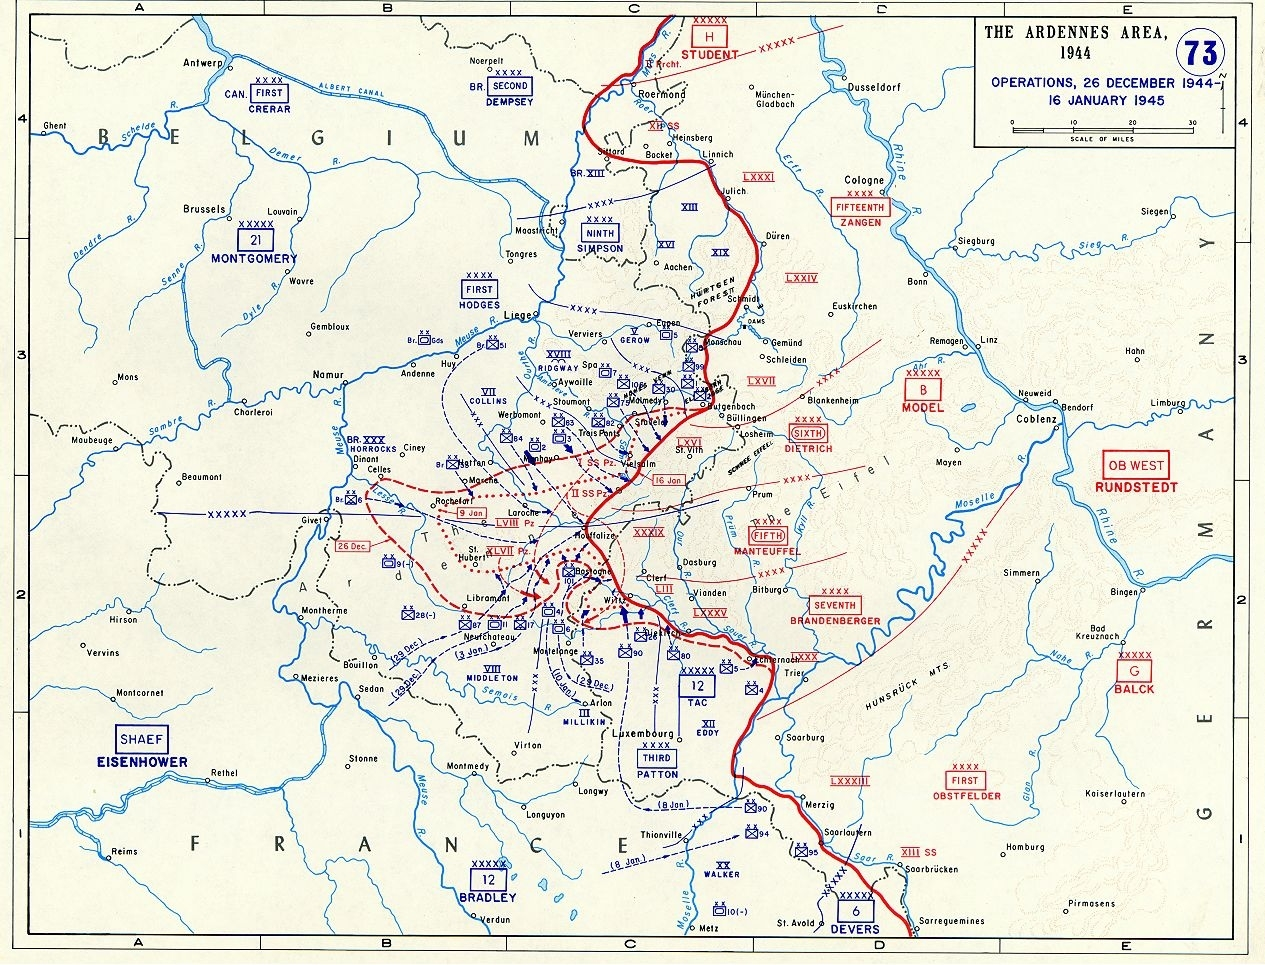 Map Of The Ardennes Area During The Battle Of The Bulge (December regarding Ww2 German Maps For Sale